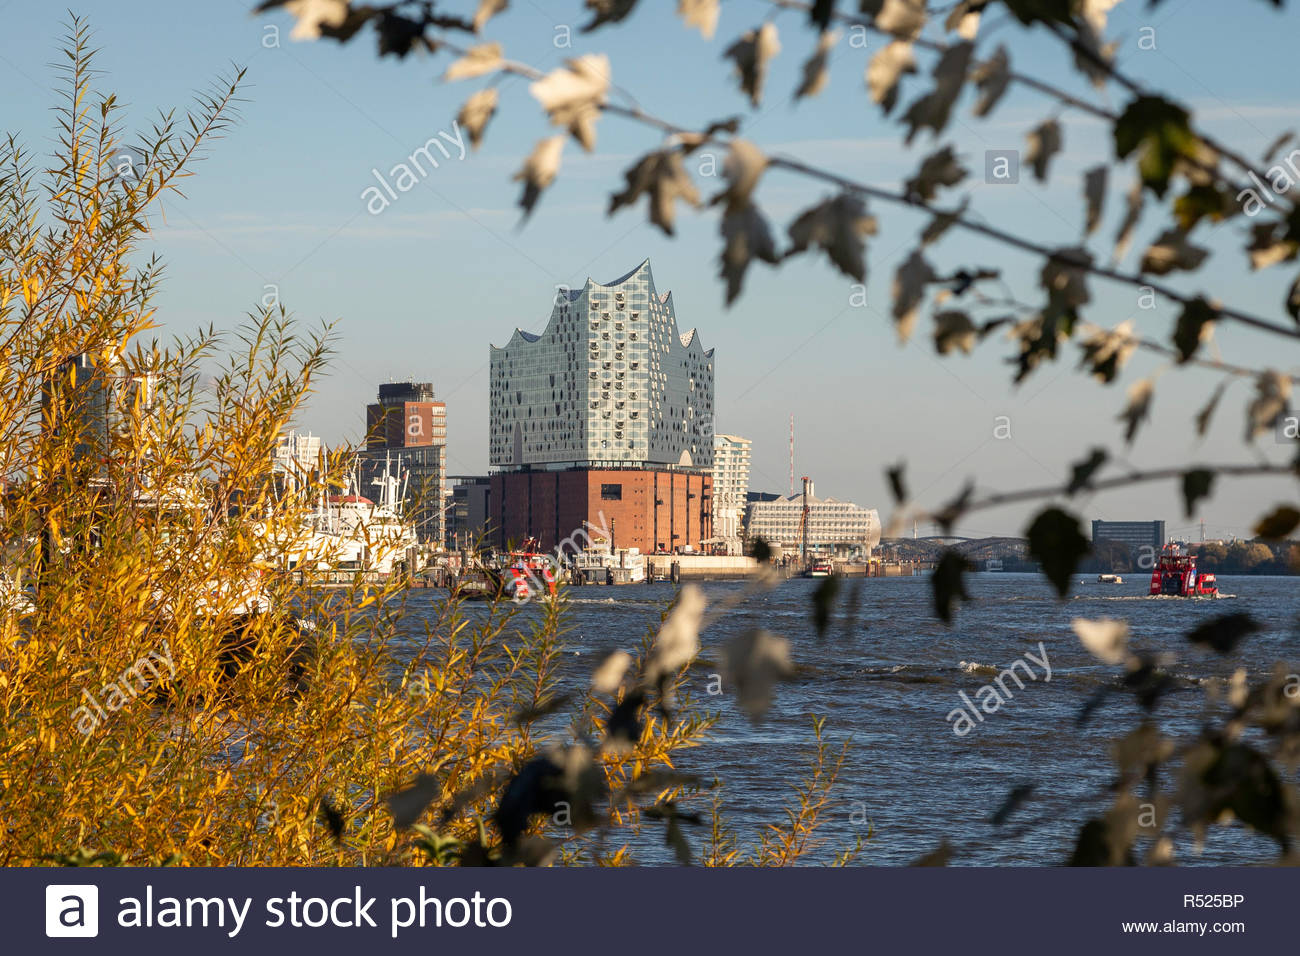 Hamburg, one of the most beautiful and most popular tourist destinations in the world. Elbphilharmony and harbour. - Stock Image